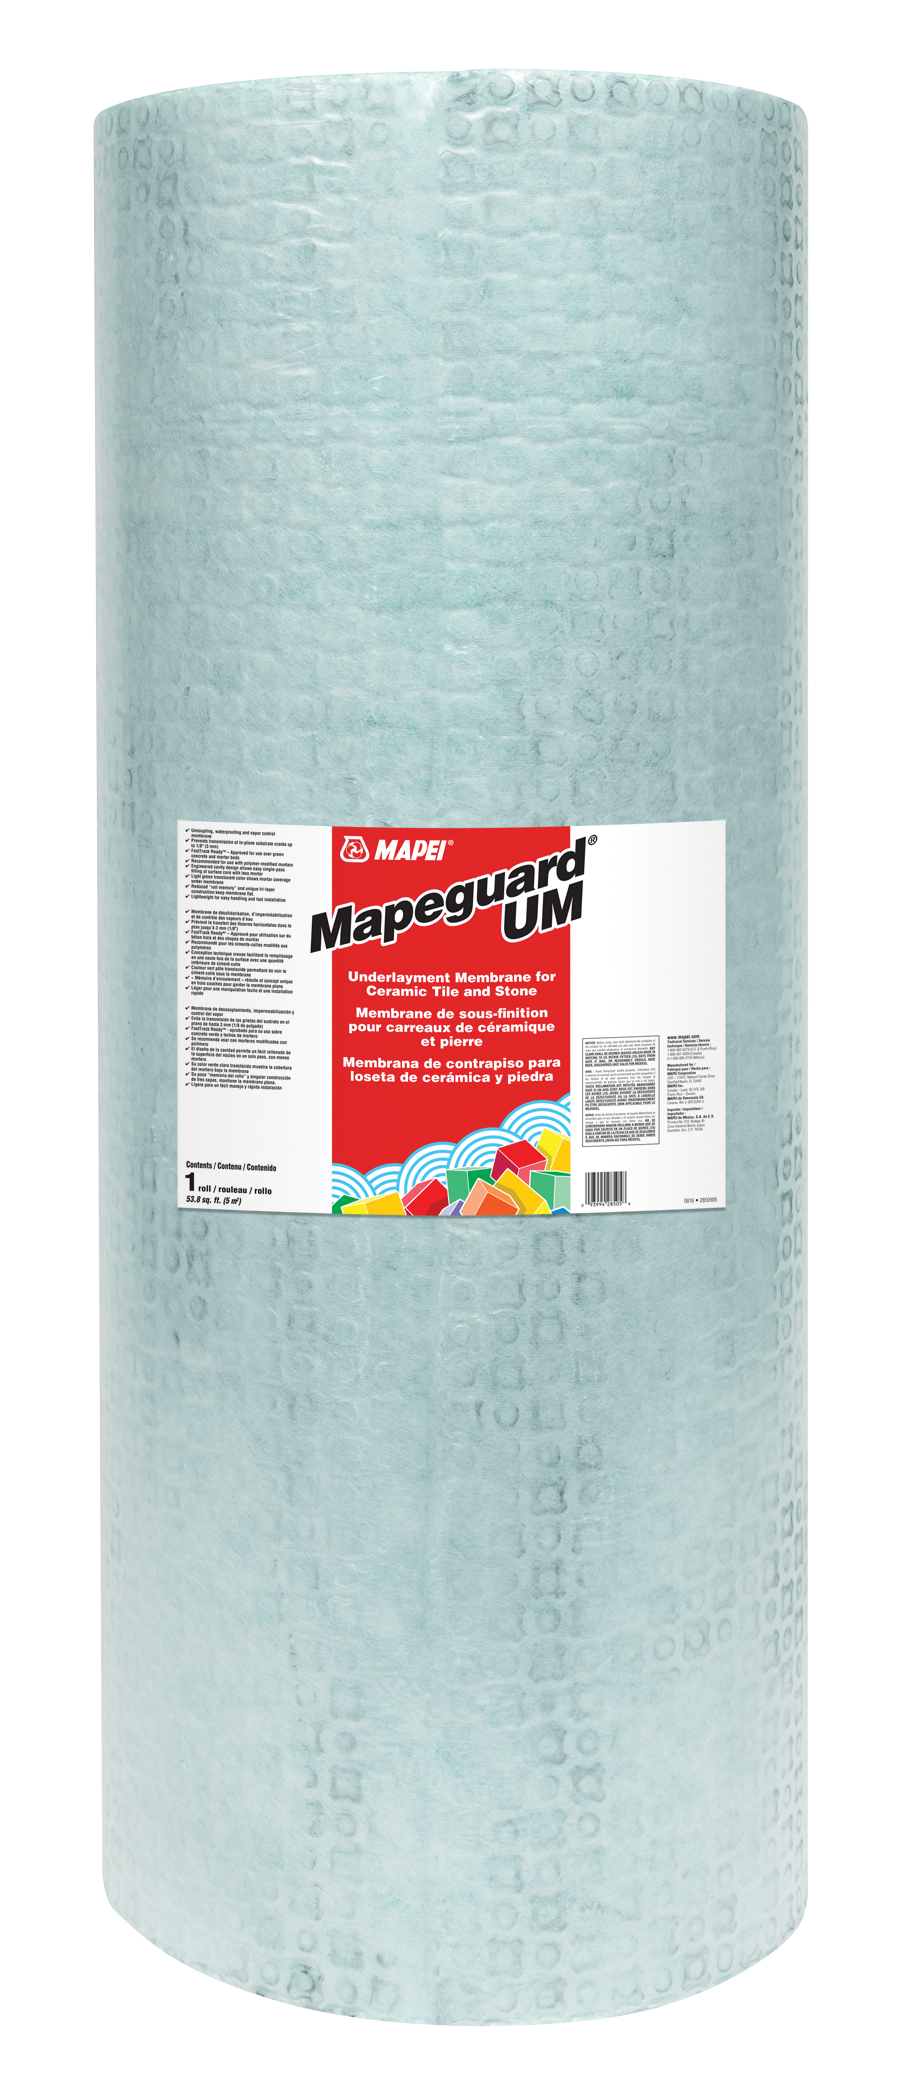 Mapei Waterproofing Membrane : Mapei s new underlayment membrane commercial